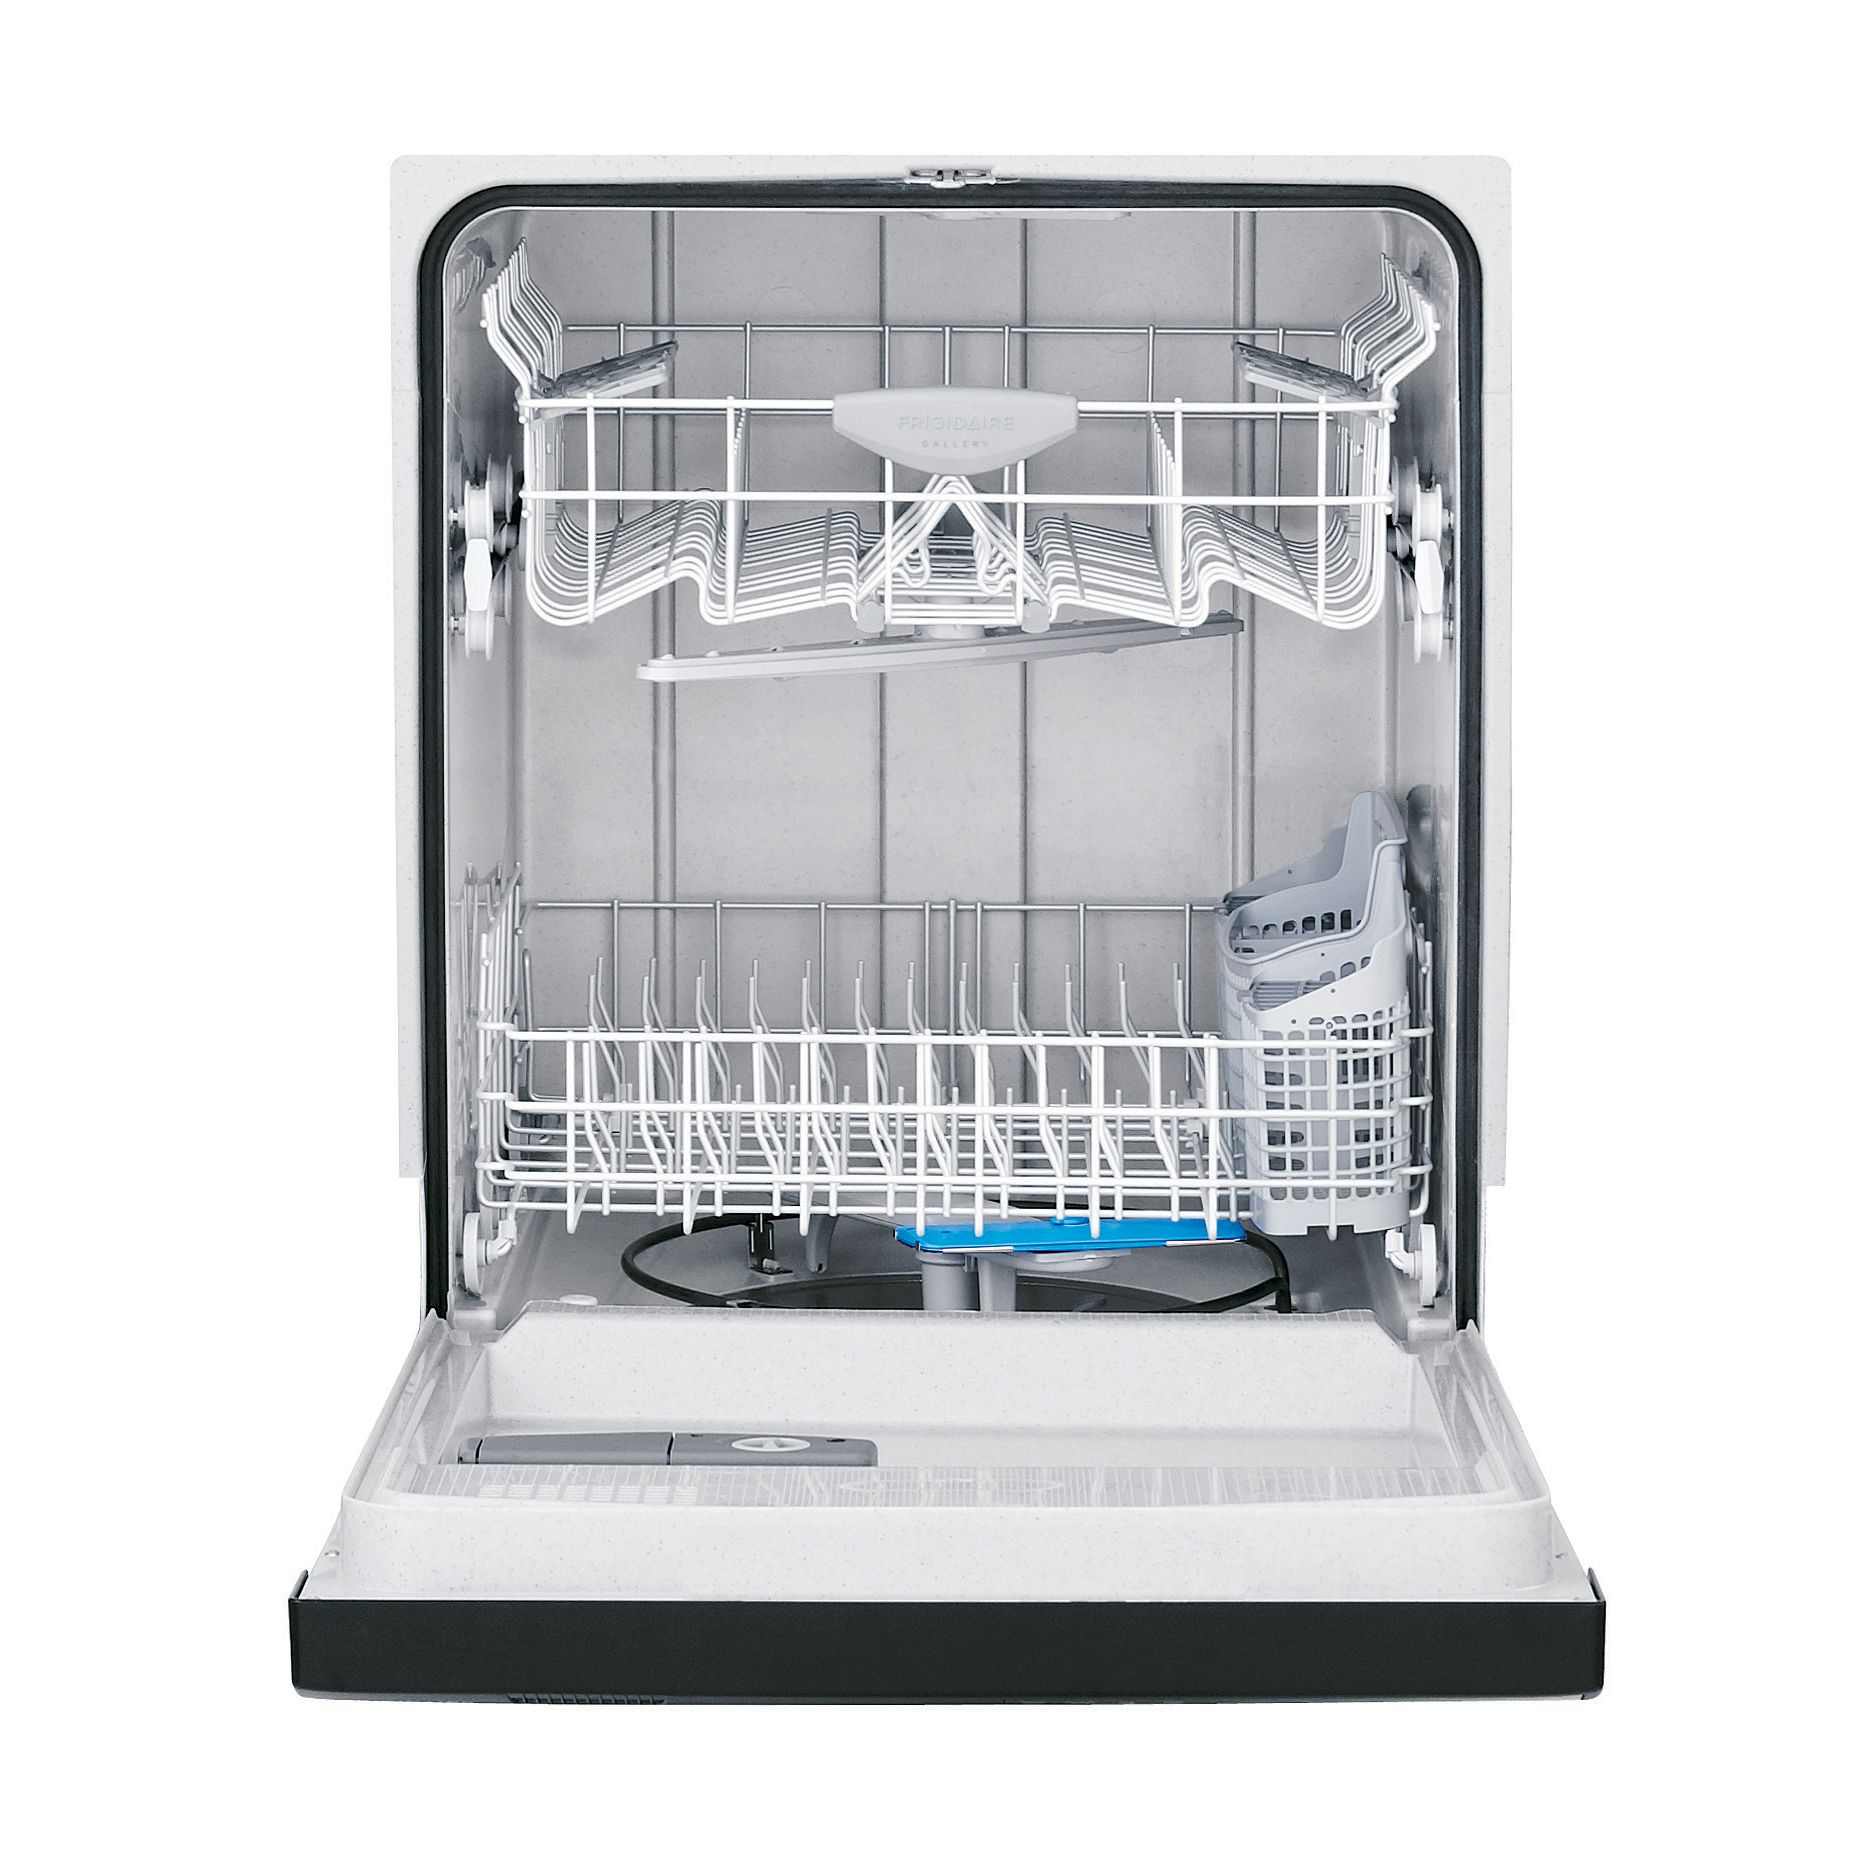 Frigidaire 24'' Built-In Dishwasher - Stainless Steel